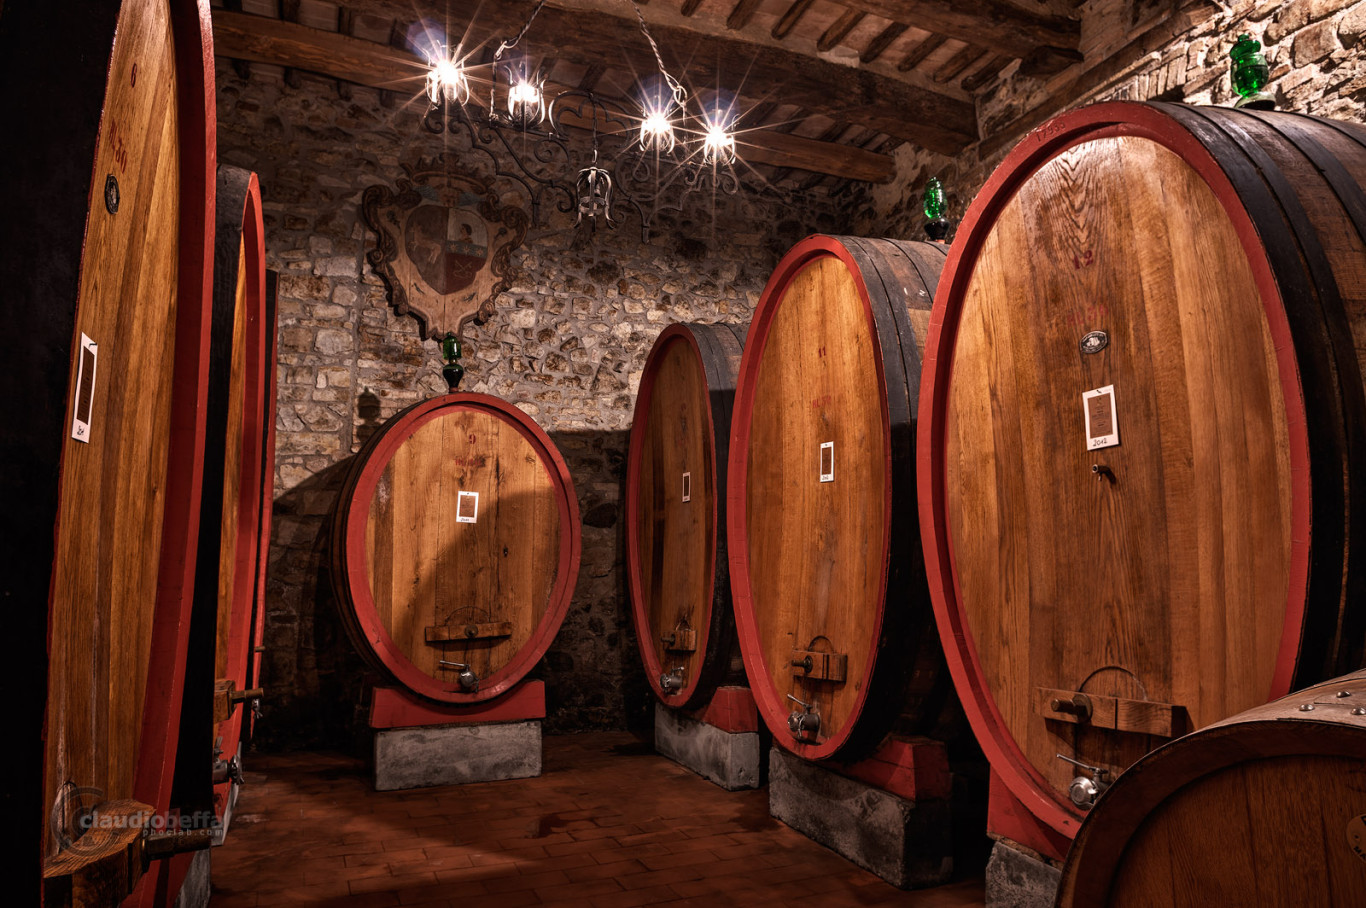 Cellar, Casks, Ancient, Wine, Wine-making, Costanti, Tuscany, Toscana, Val d'Orcia, Montalcino, Italy, Italia, gathering